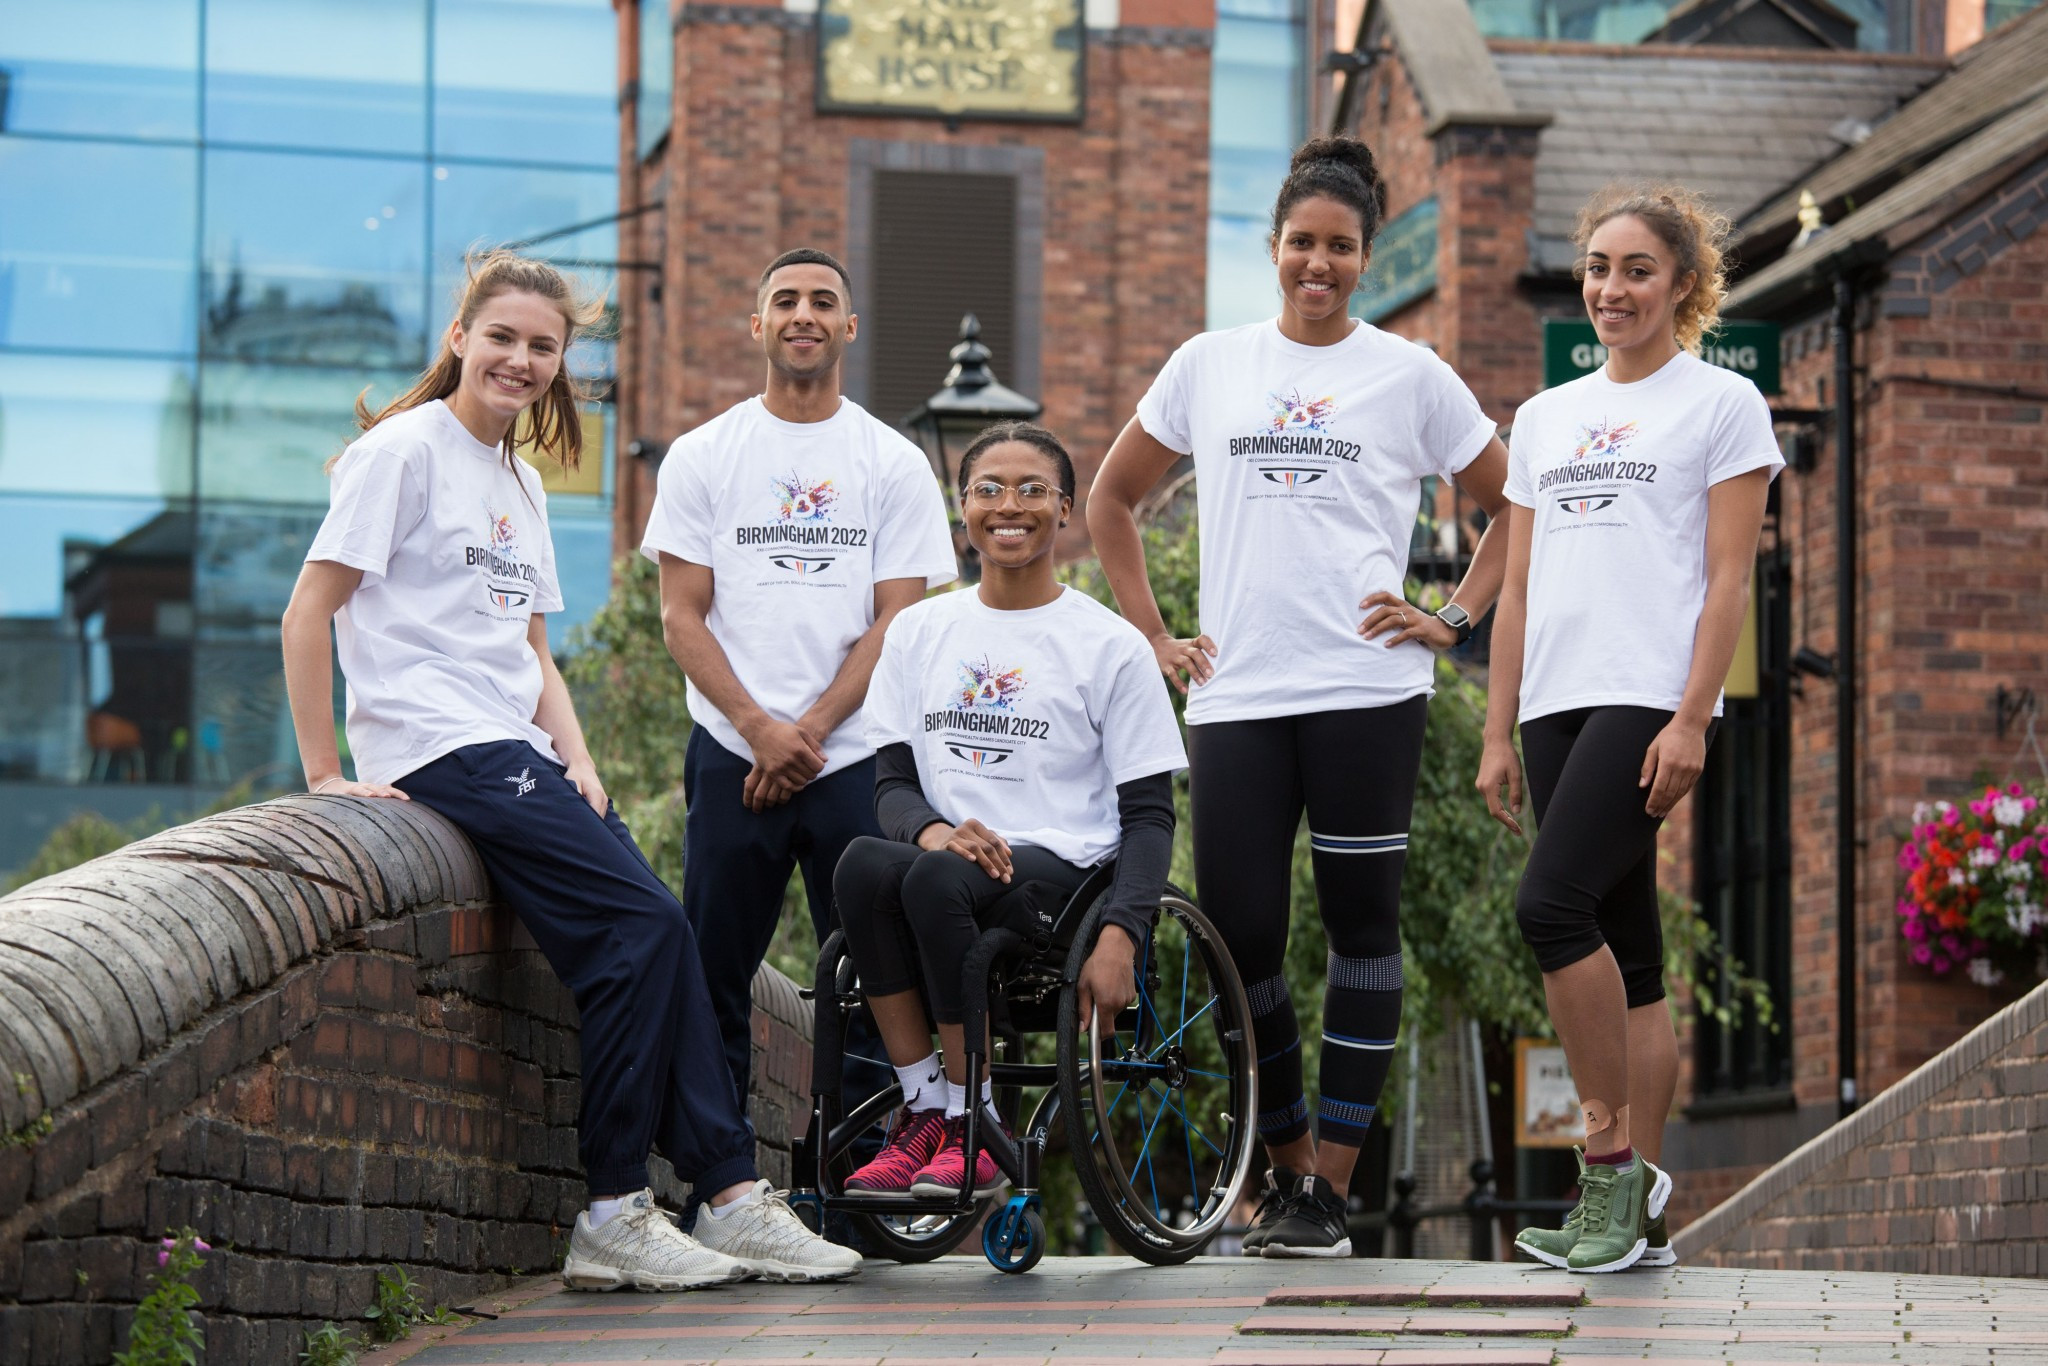 Midlands athletes promote Birmingham bid for 2022 Commonwealth Games